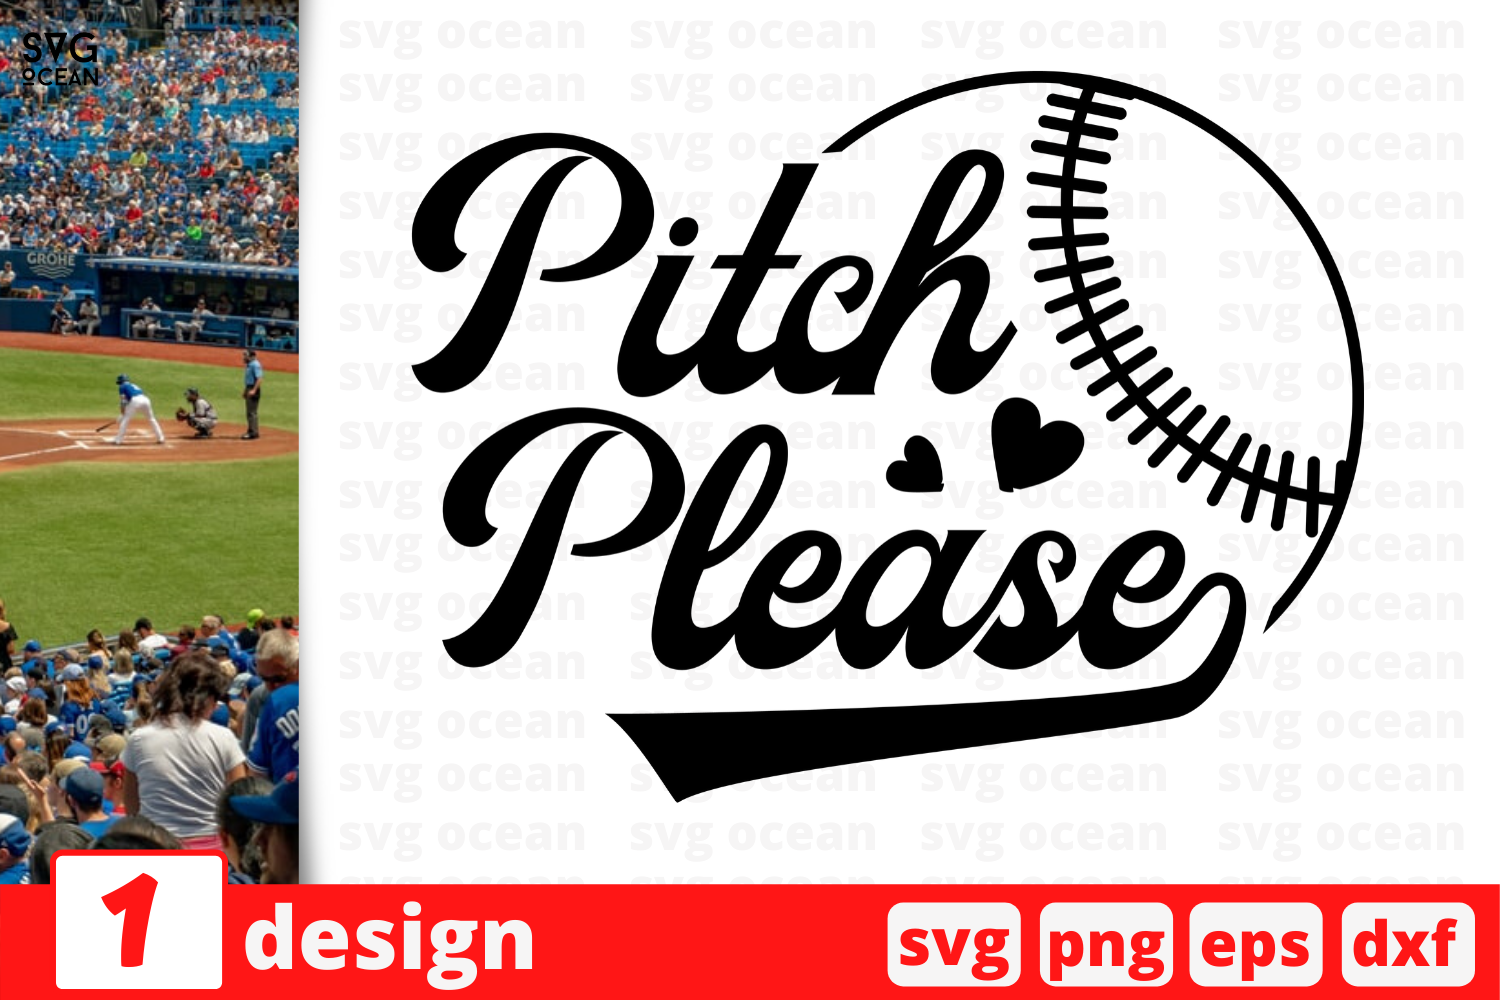 Download Free Pitch Please Graphic By Svgocean Creative Fabrica for Cricut Explore, Silhouette and other cutting machines.